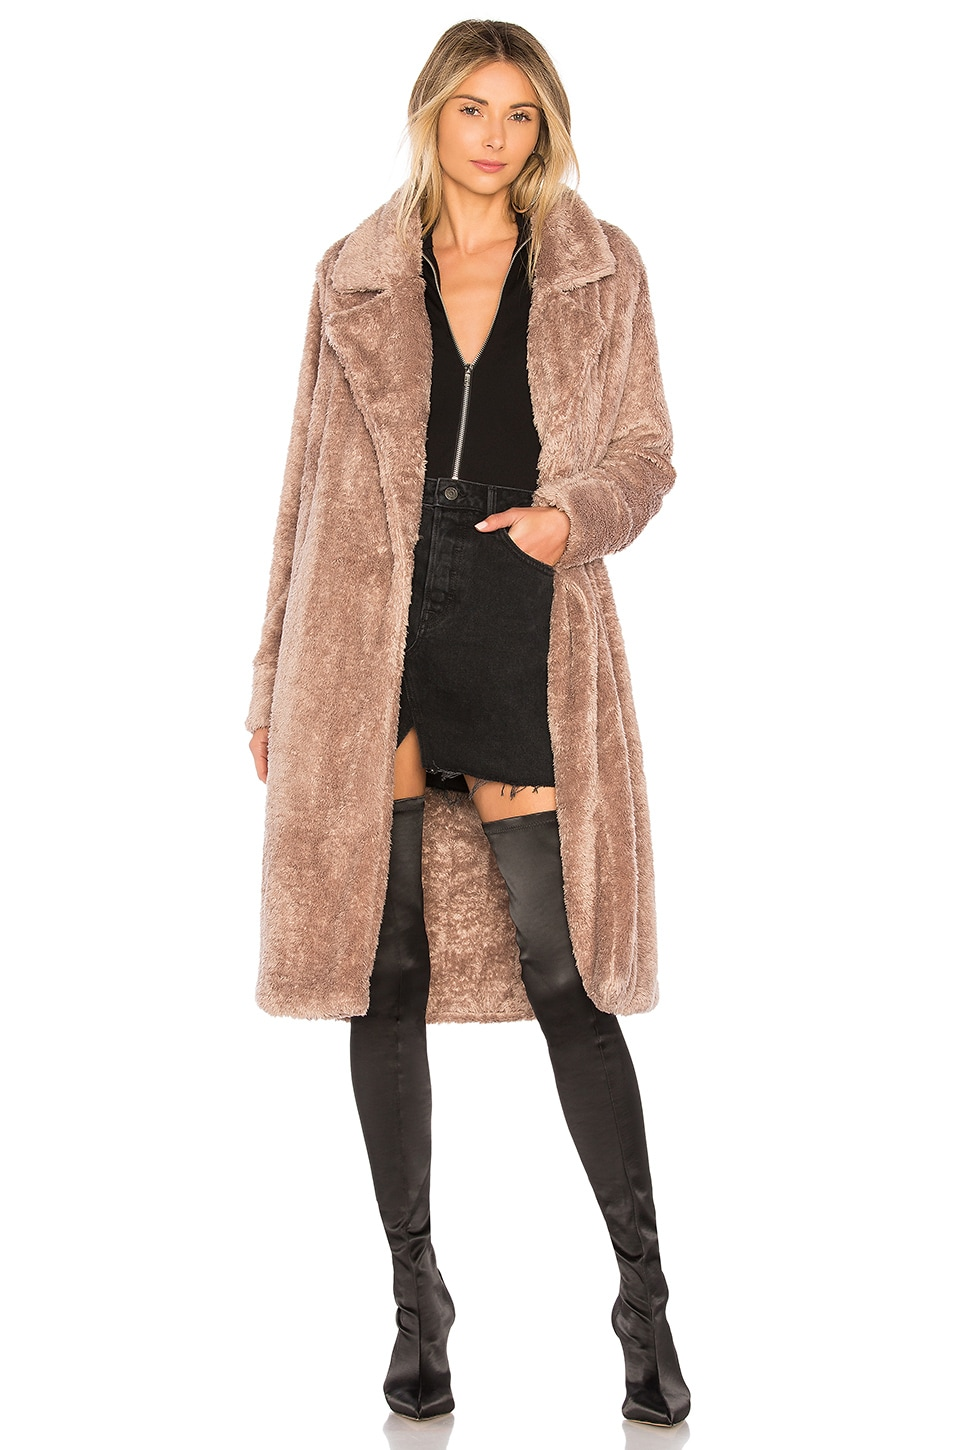 Lovers + Friends Teddy Fur Coat in Rival